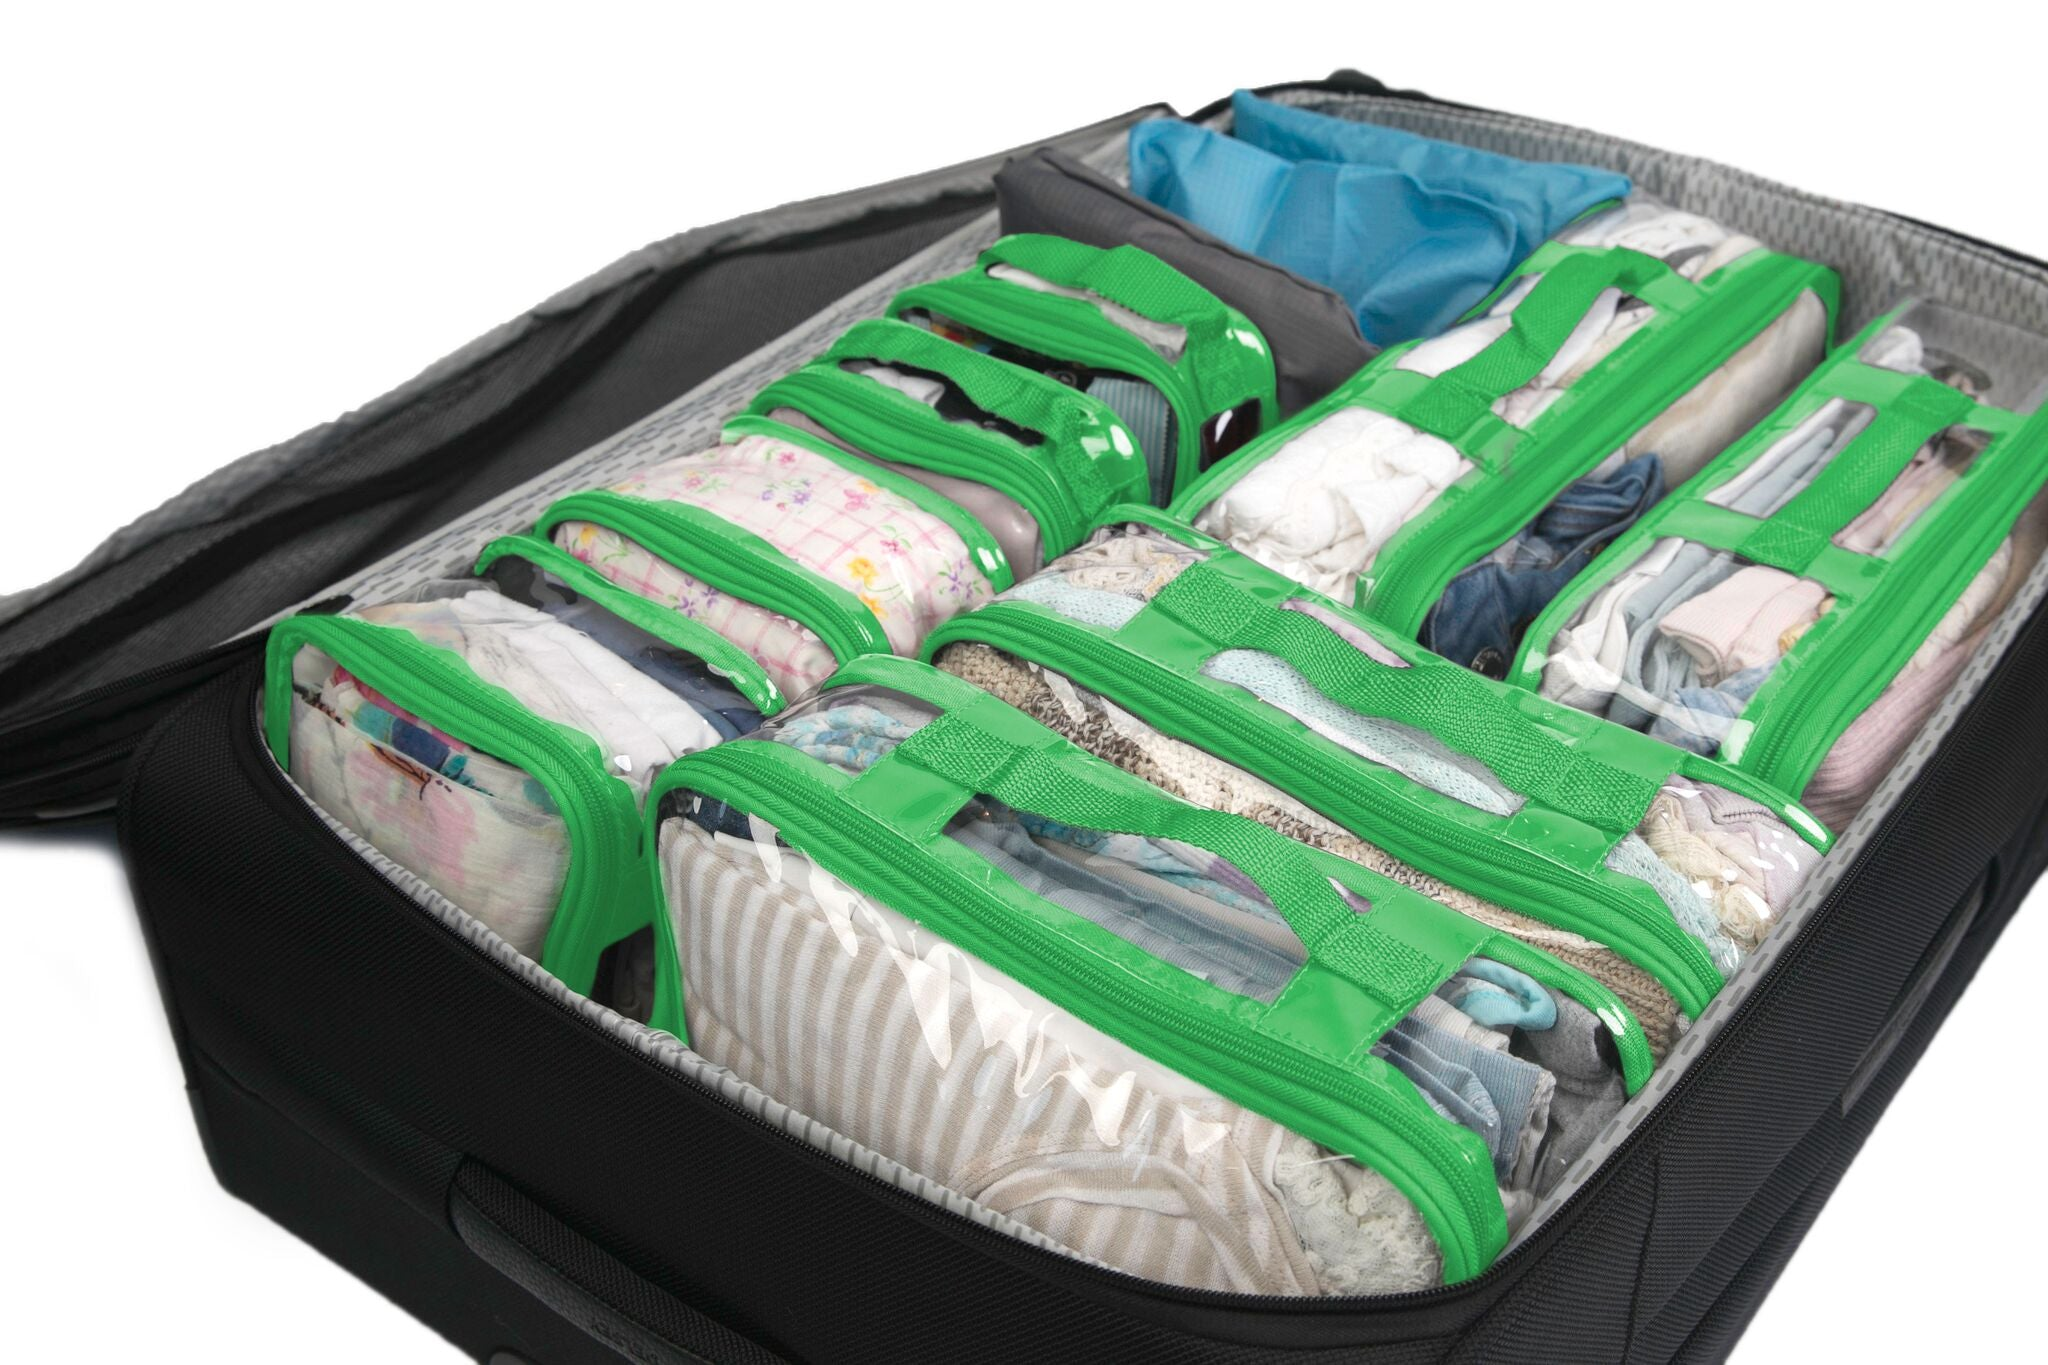 Luggage organizer set in green